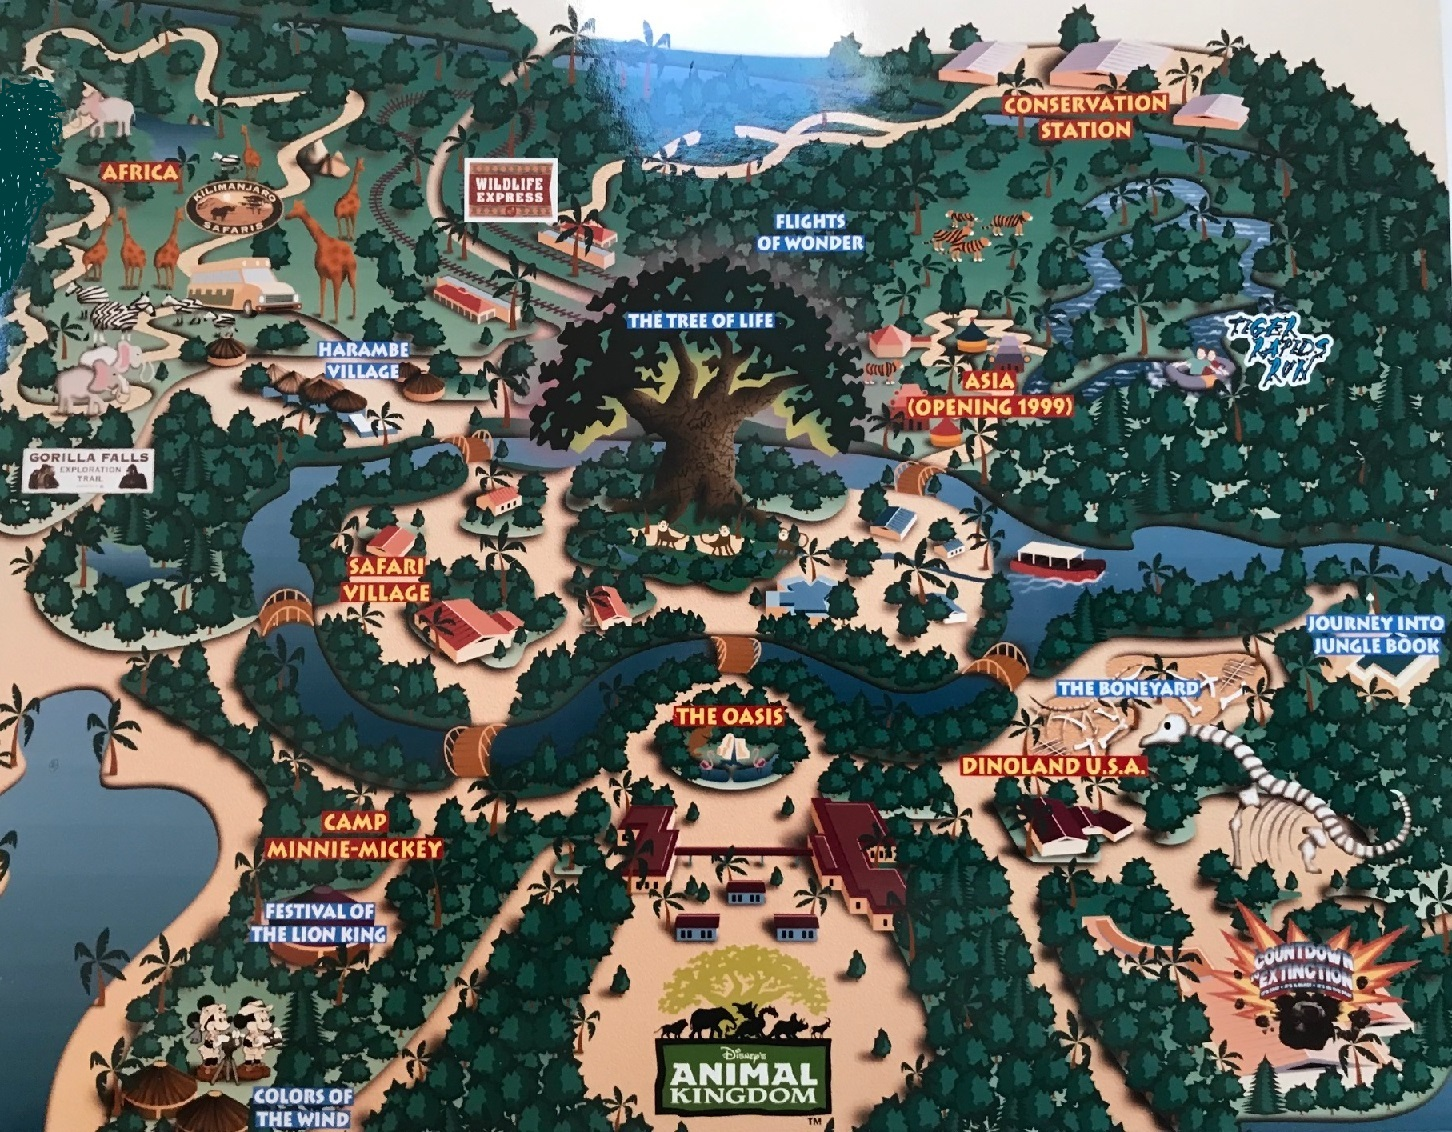 Since opening in 1998, Animal Kingdom has seen some wild changes